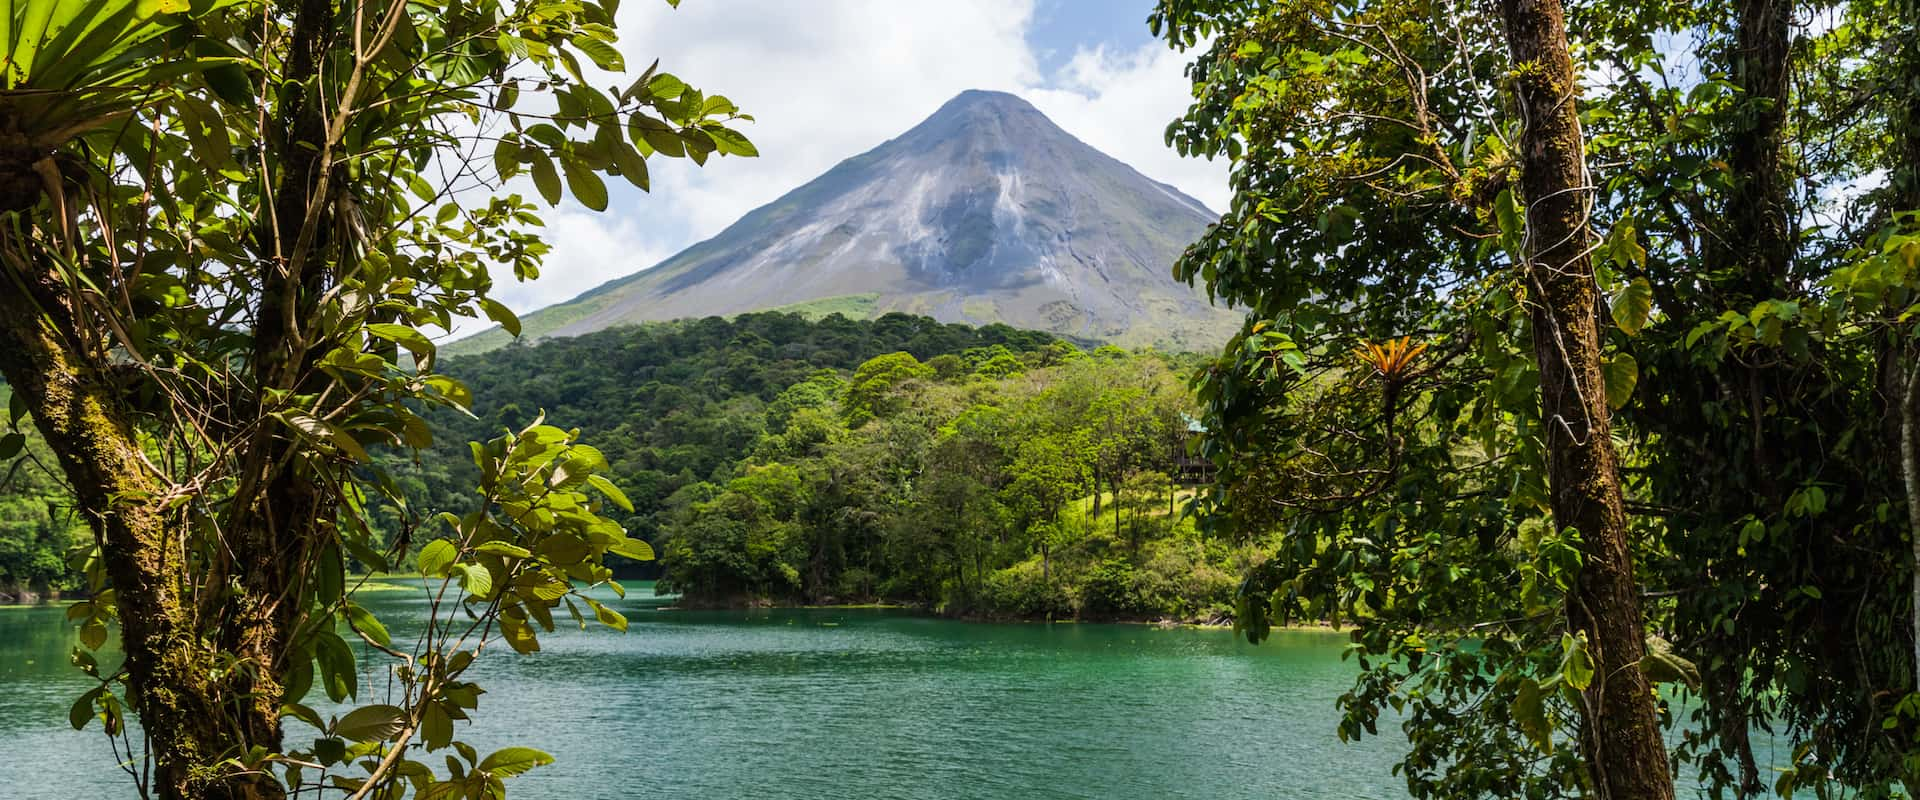 6 Kleinschalige Cruises in Costa Rica - LiveAboard.com